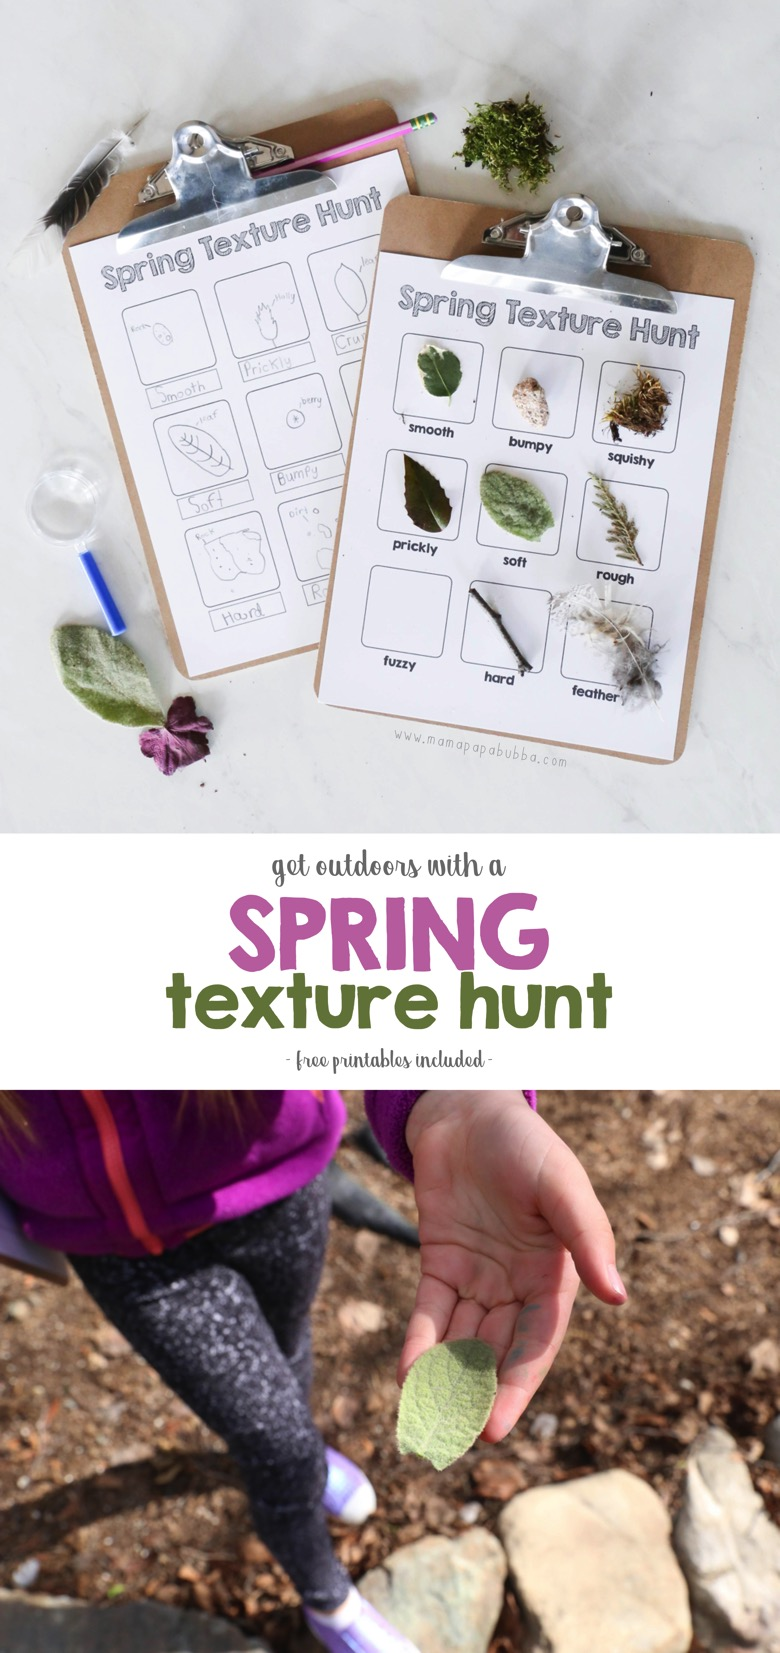 Spring Texture Hunt long | Mama Papa Bubba